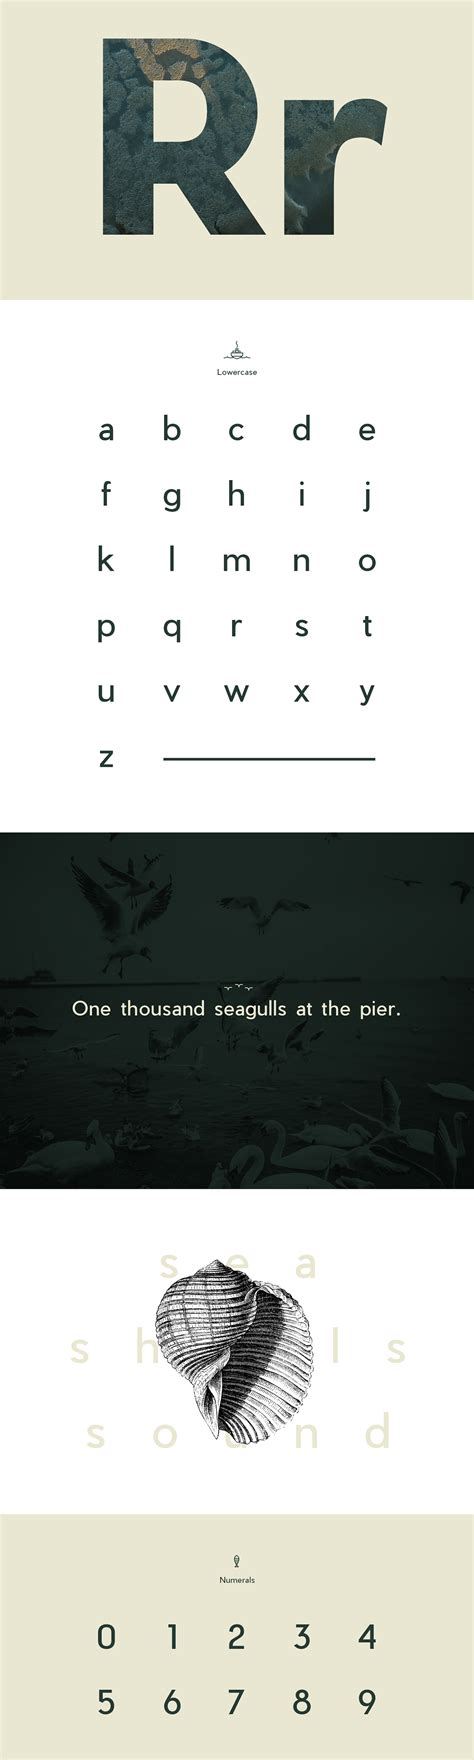 pier sans font free download pier sans free font new weights added on behance